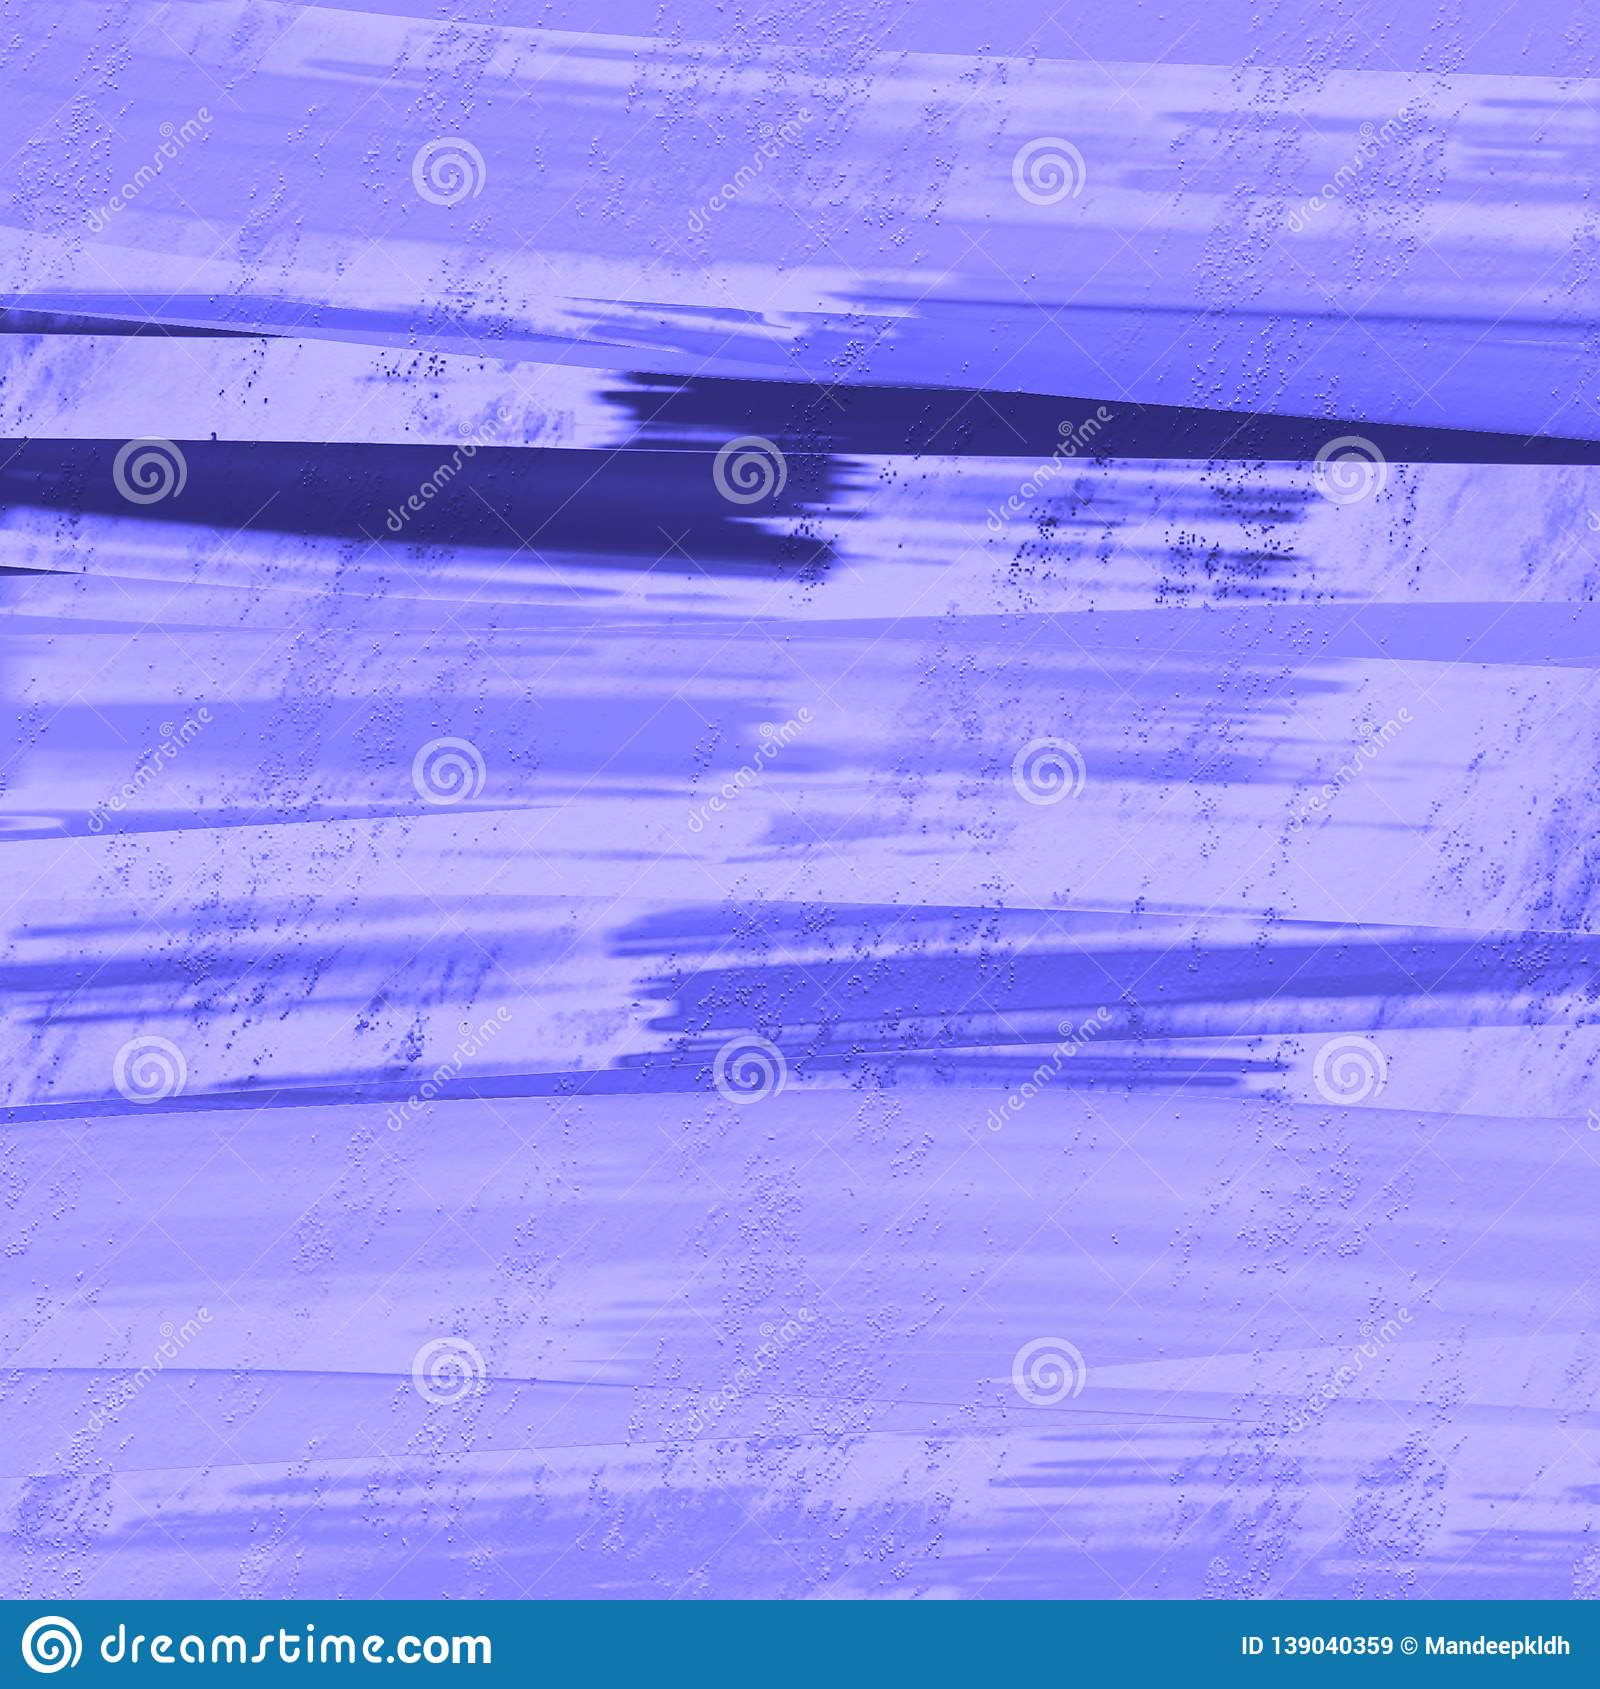 Abstract surface.closeup art. Grunge paint on background. Painted textured background. Color stained digital paper. Stamped art.